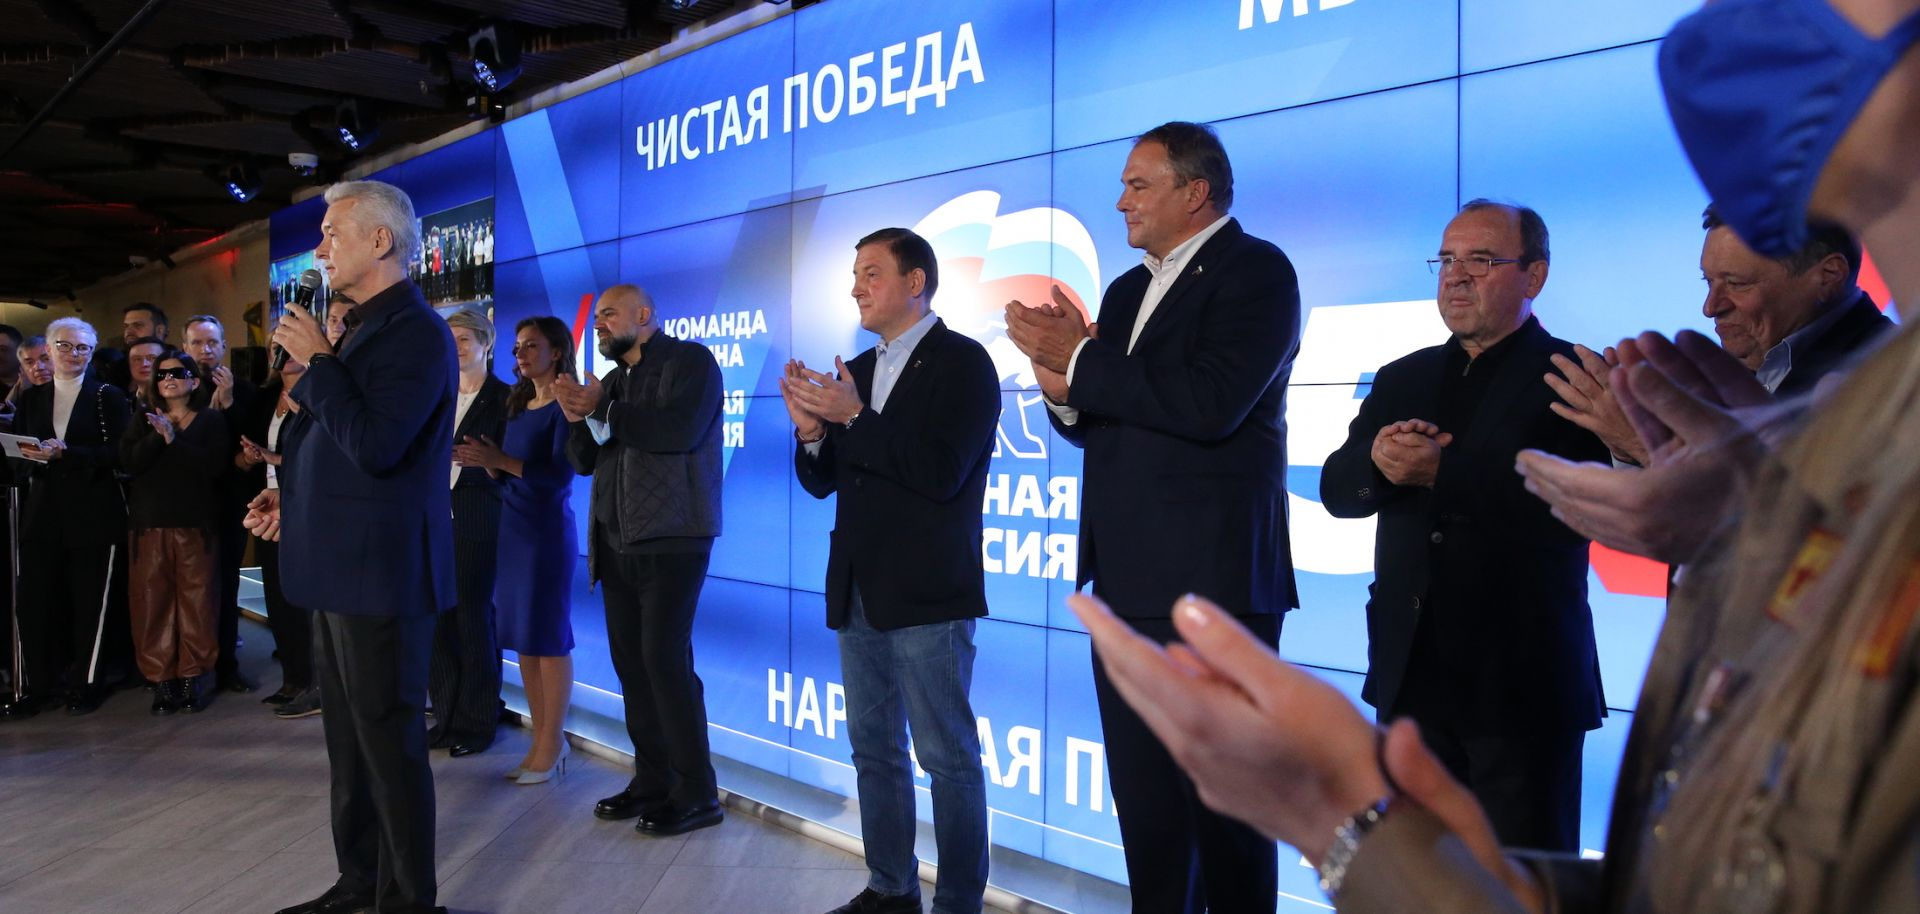 Moscow Mayor Sergei Sobyanin (C) addresses supporters of the United Russia party at the party headquarters during 2021 parliamentary elections on Sept. 19, 2021, in Moscow.